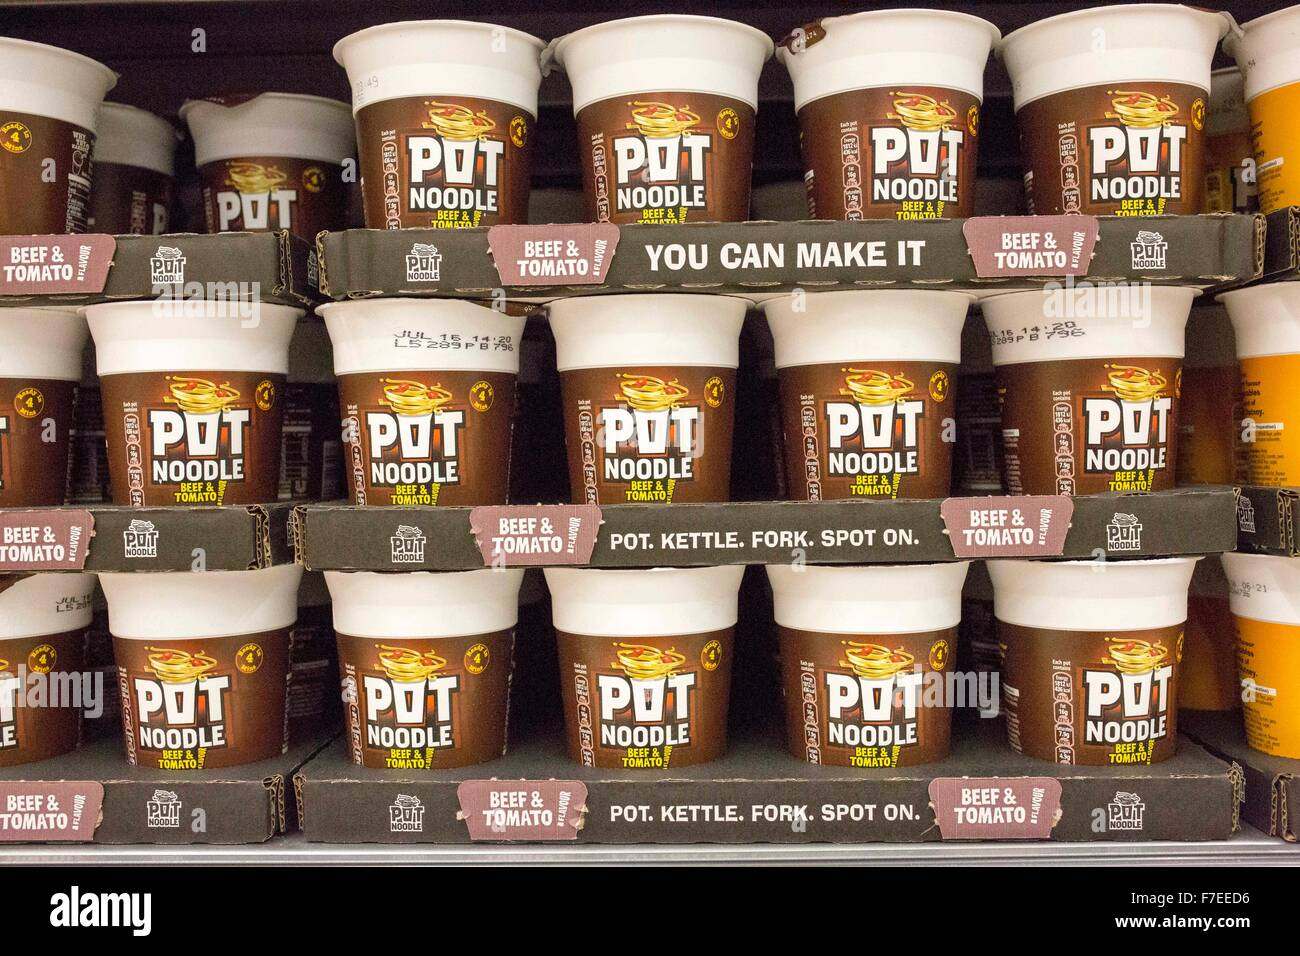 Pot Noodles on display in a supermarket - Stock Image